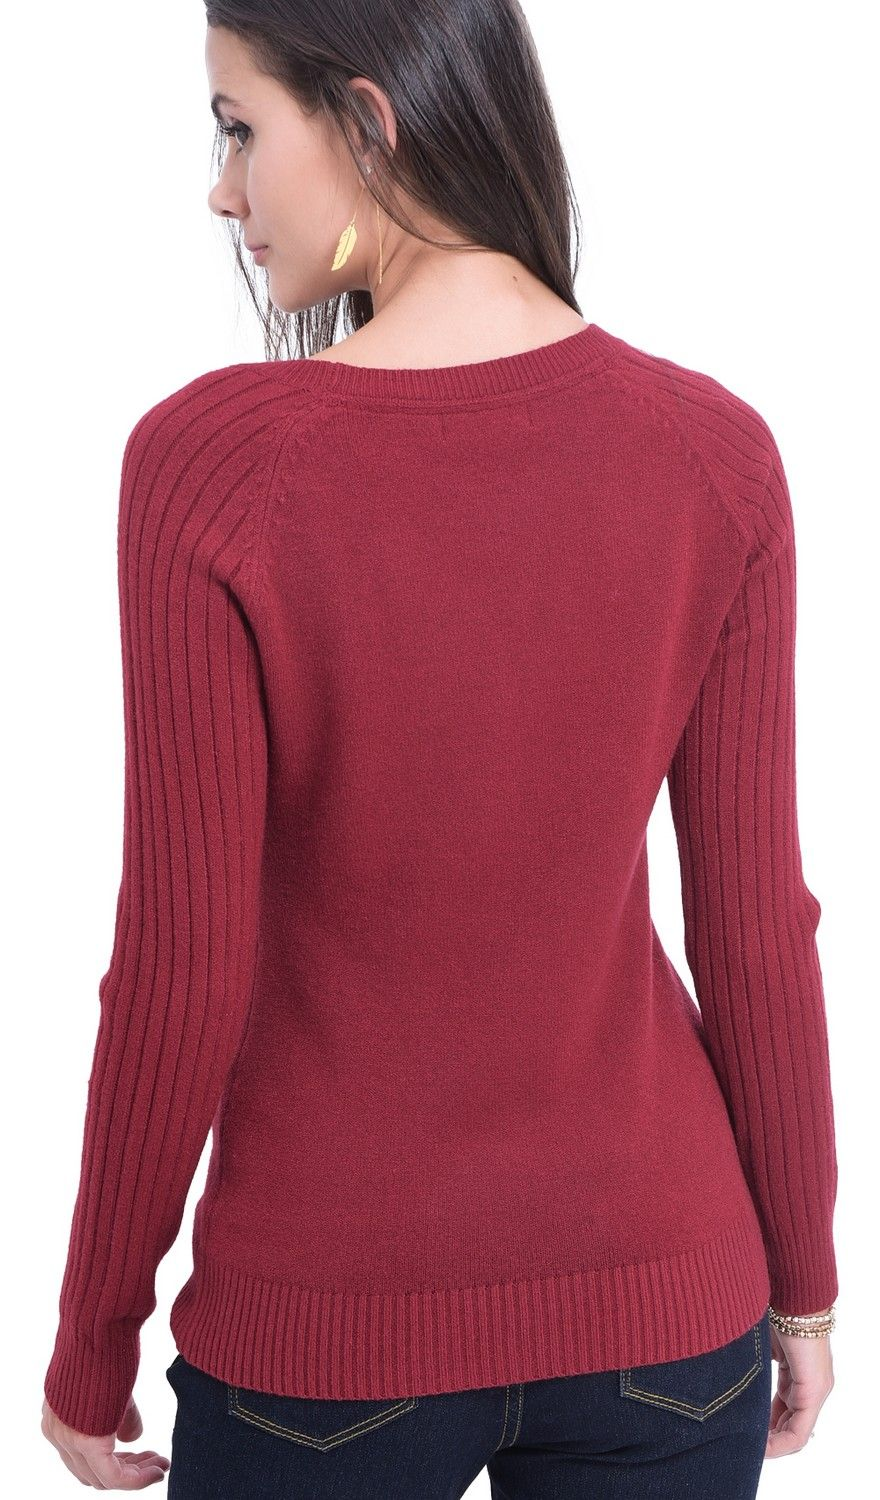 William De Faye Round Neck Sweater with Ribbed Sleeves in Maroon